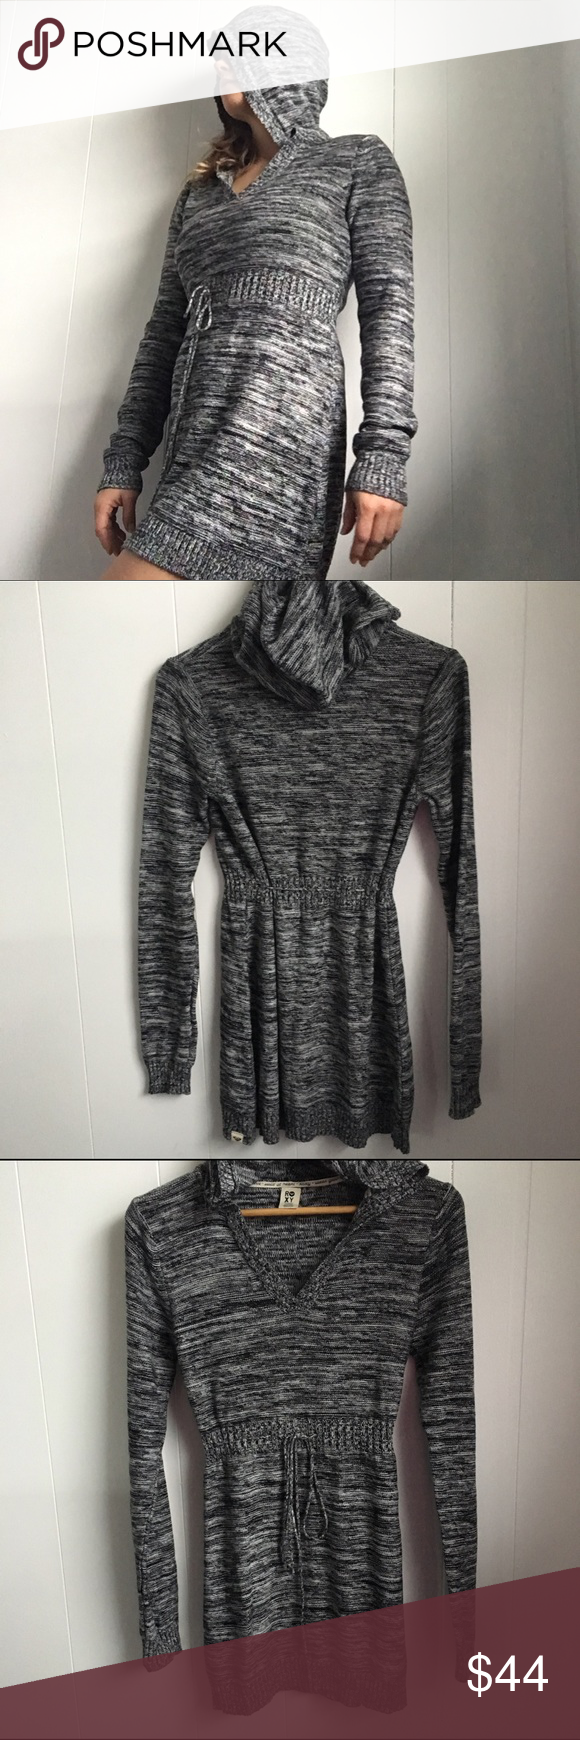 Roxy knit hooded sweater dress black white large | Hooded sweater ...